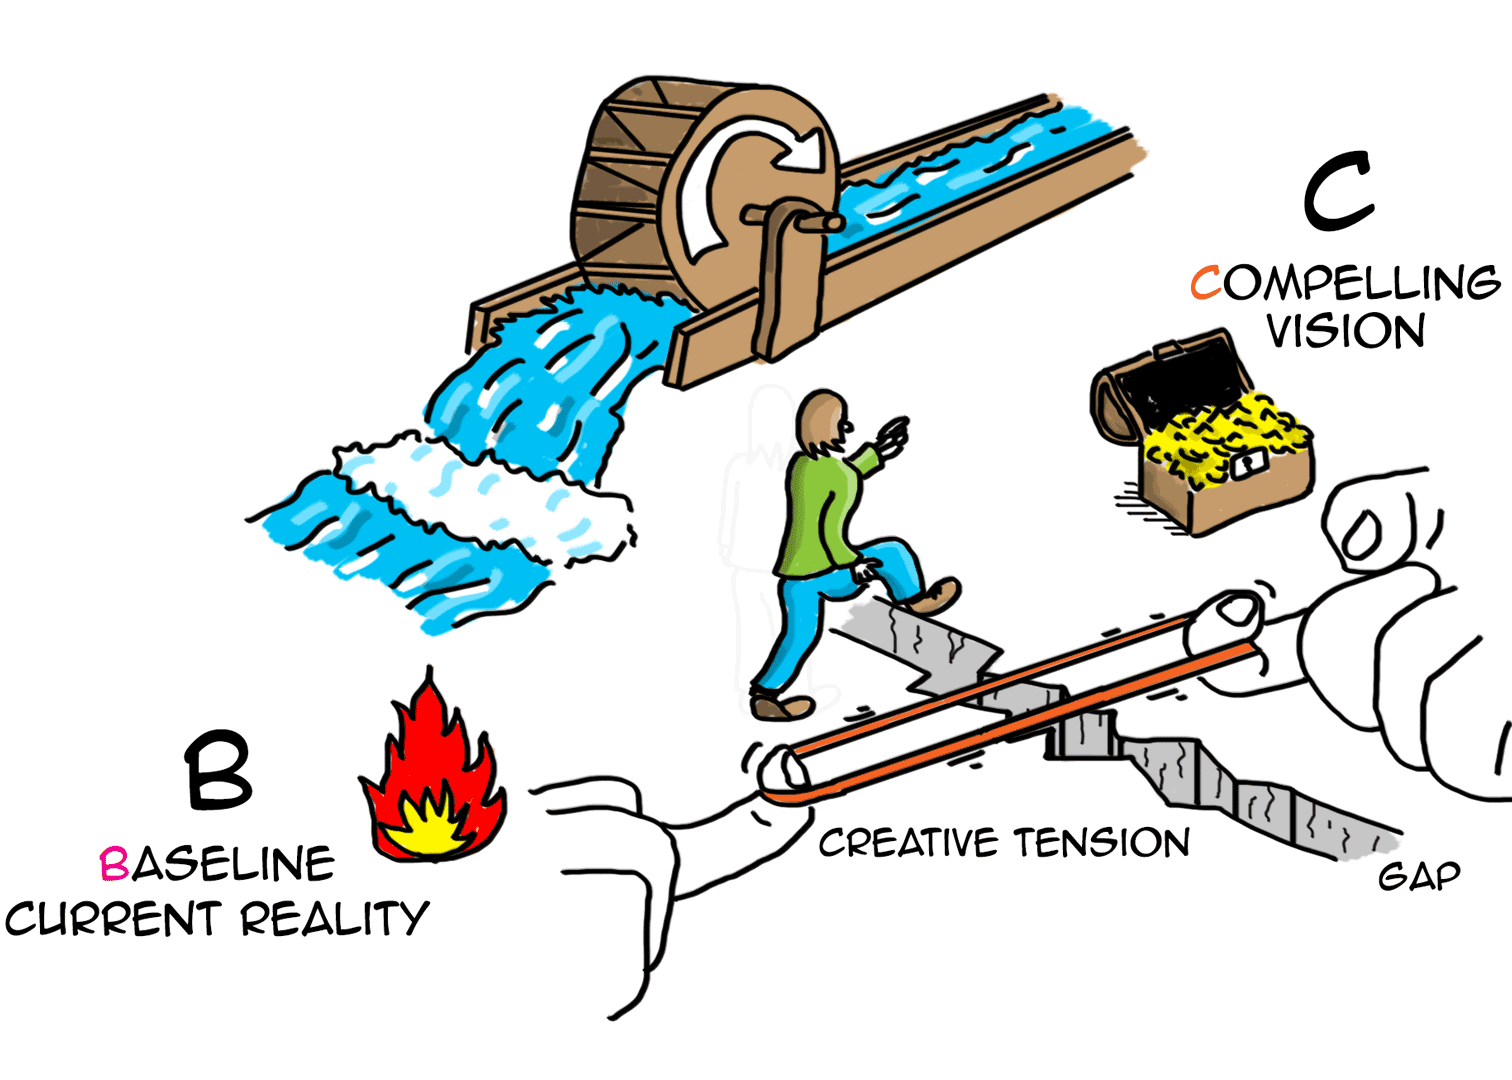 Sustainability Gap: Creative tension engenders motion (ABCD)